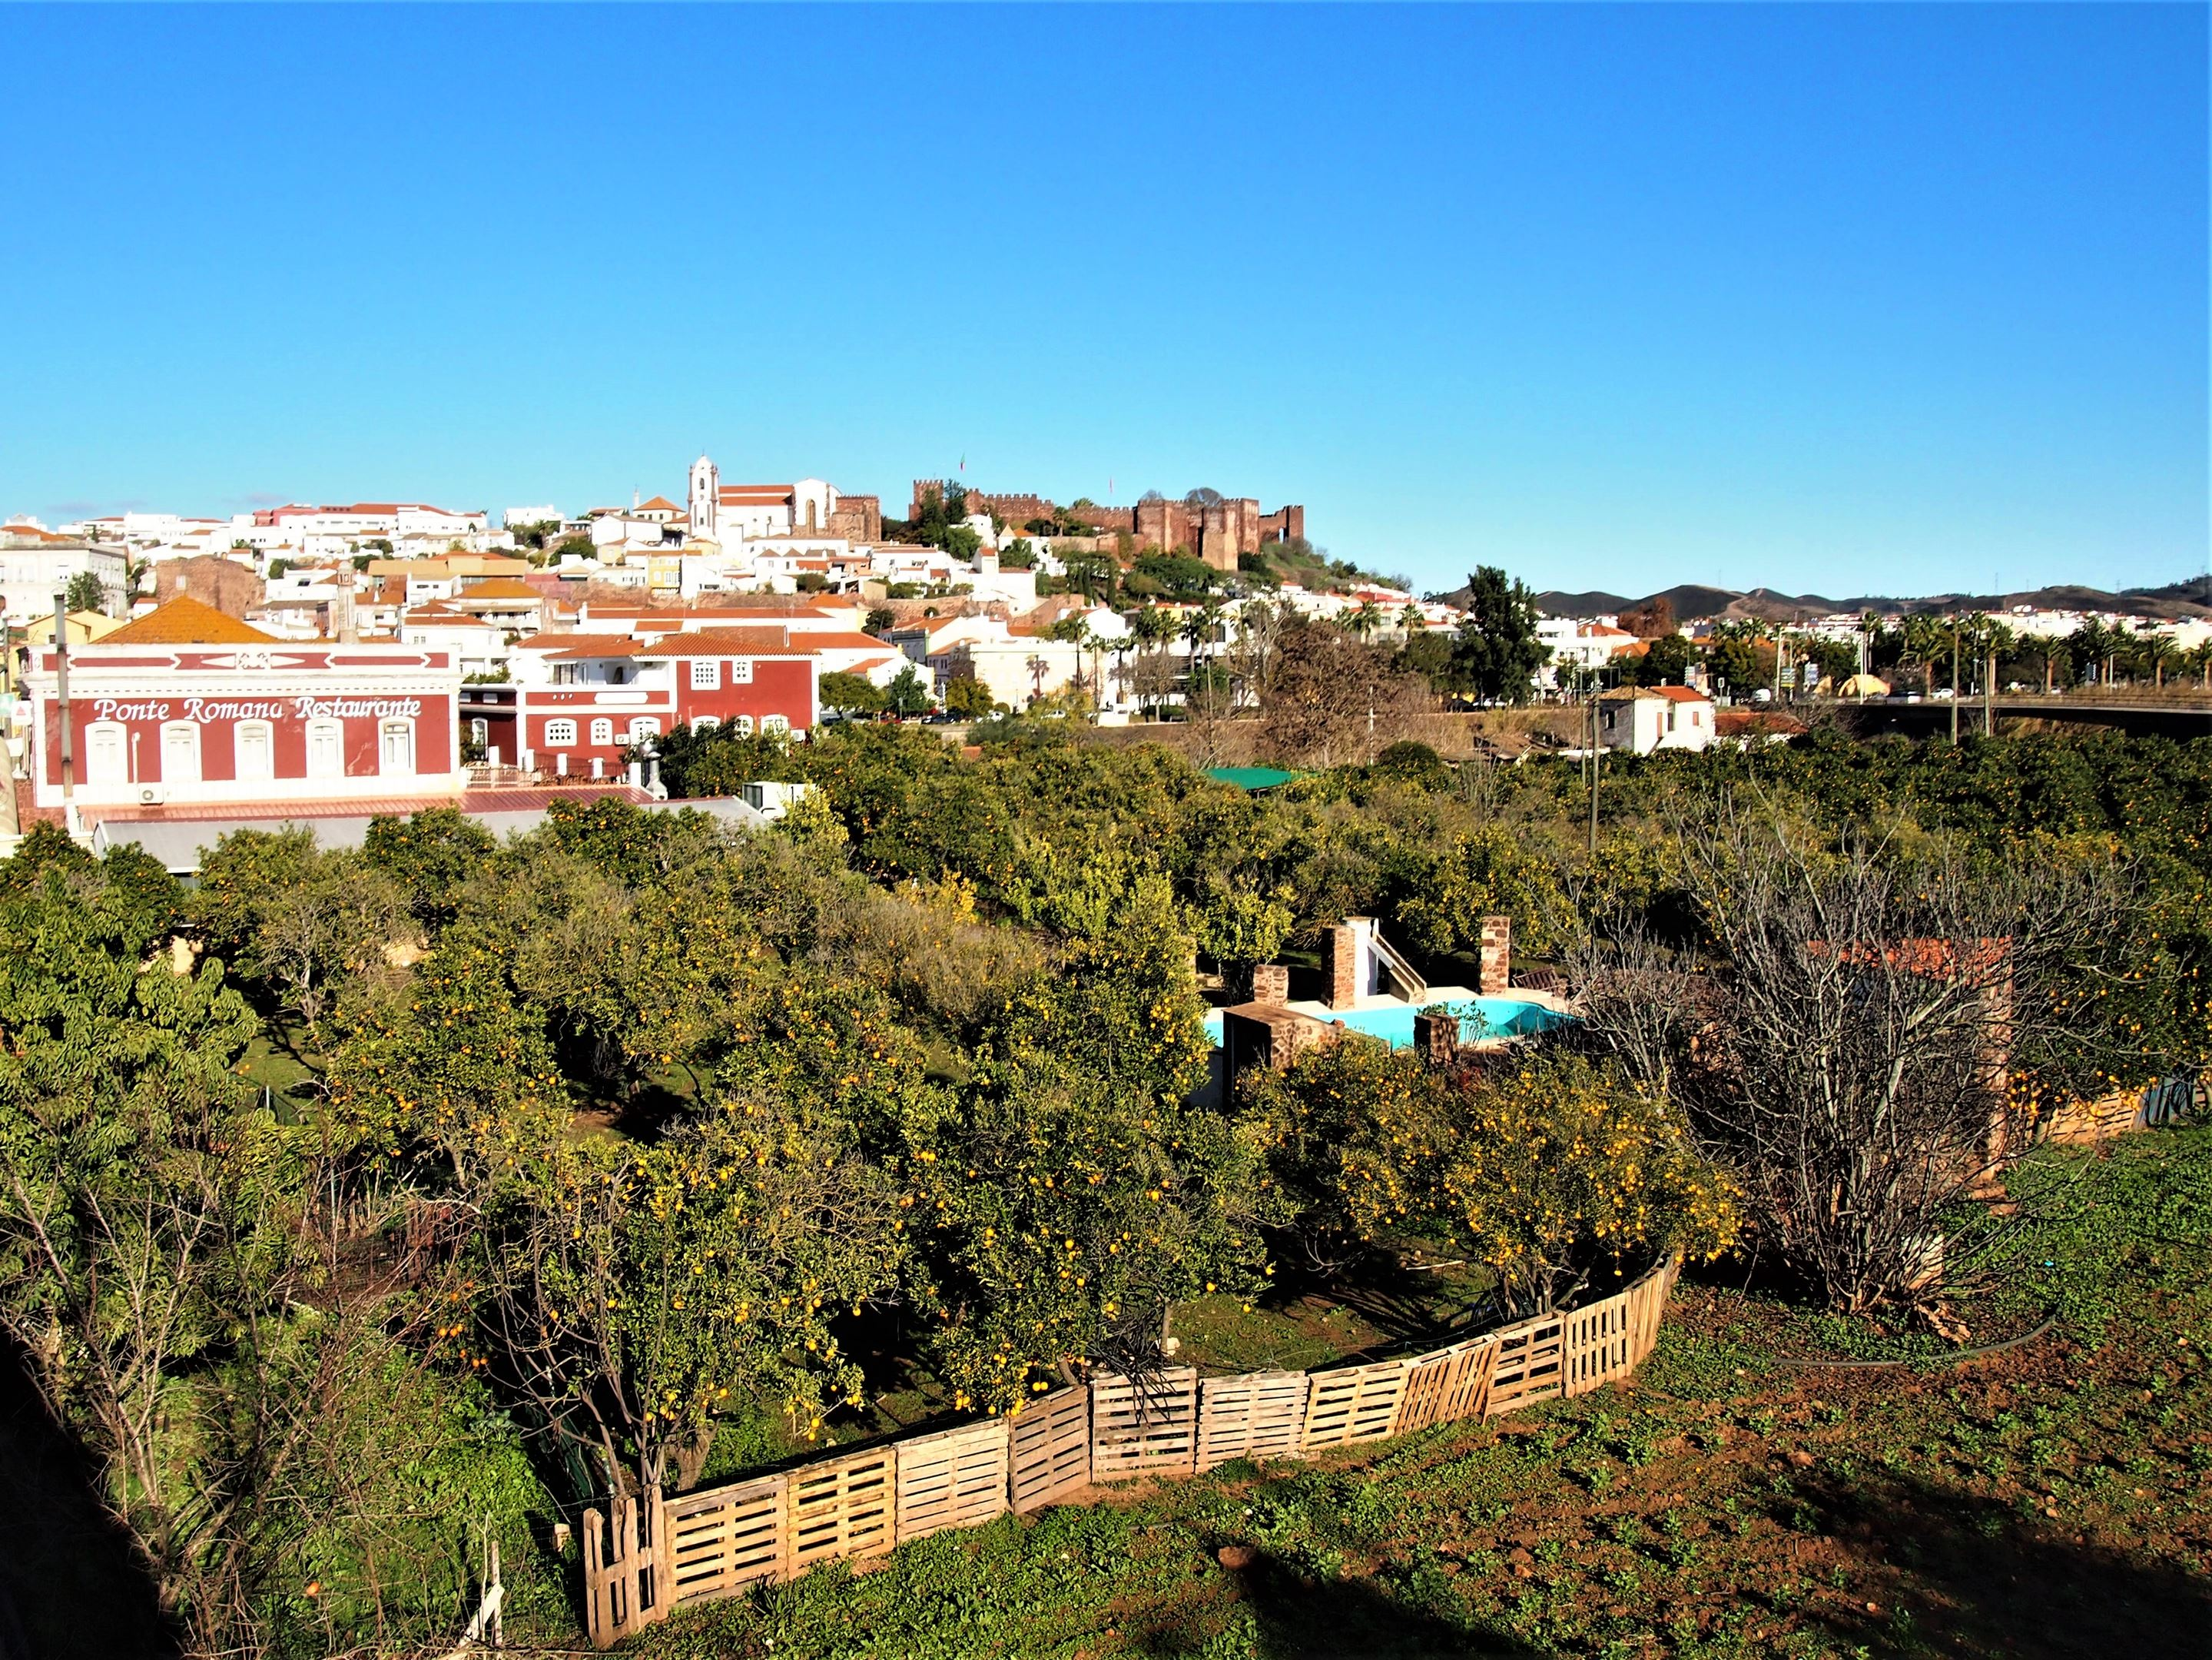 The city of Silves with the Castle and the Cathedral sitting on top of the hill